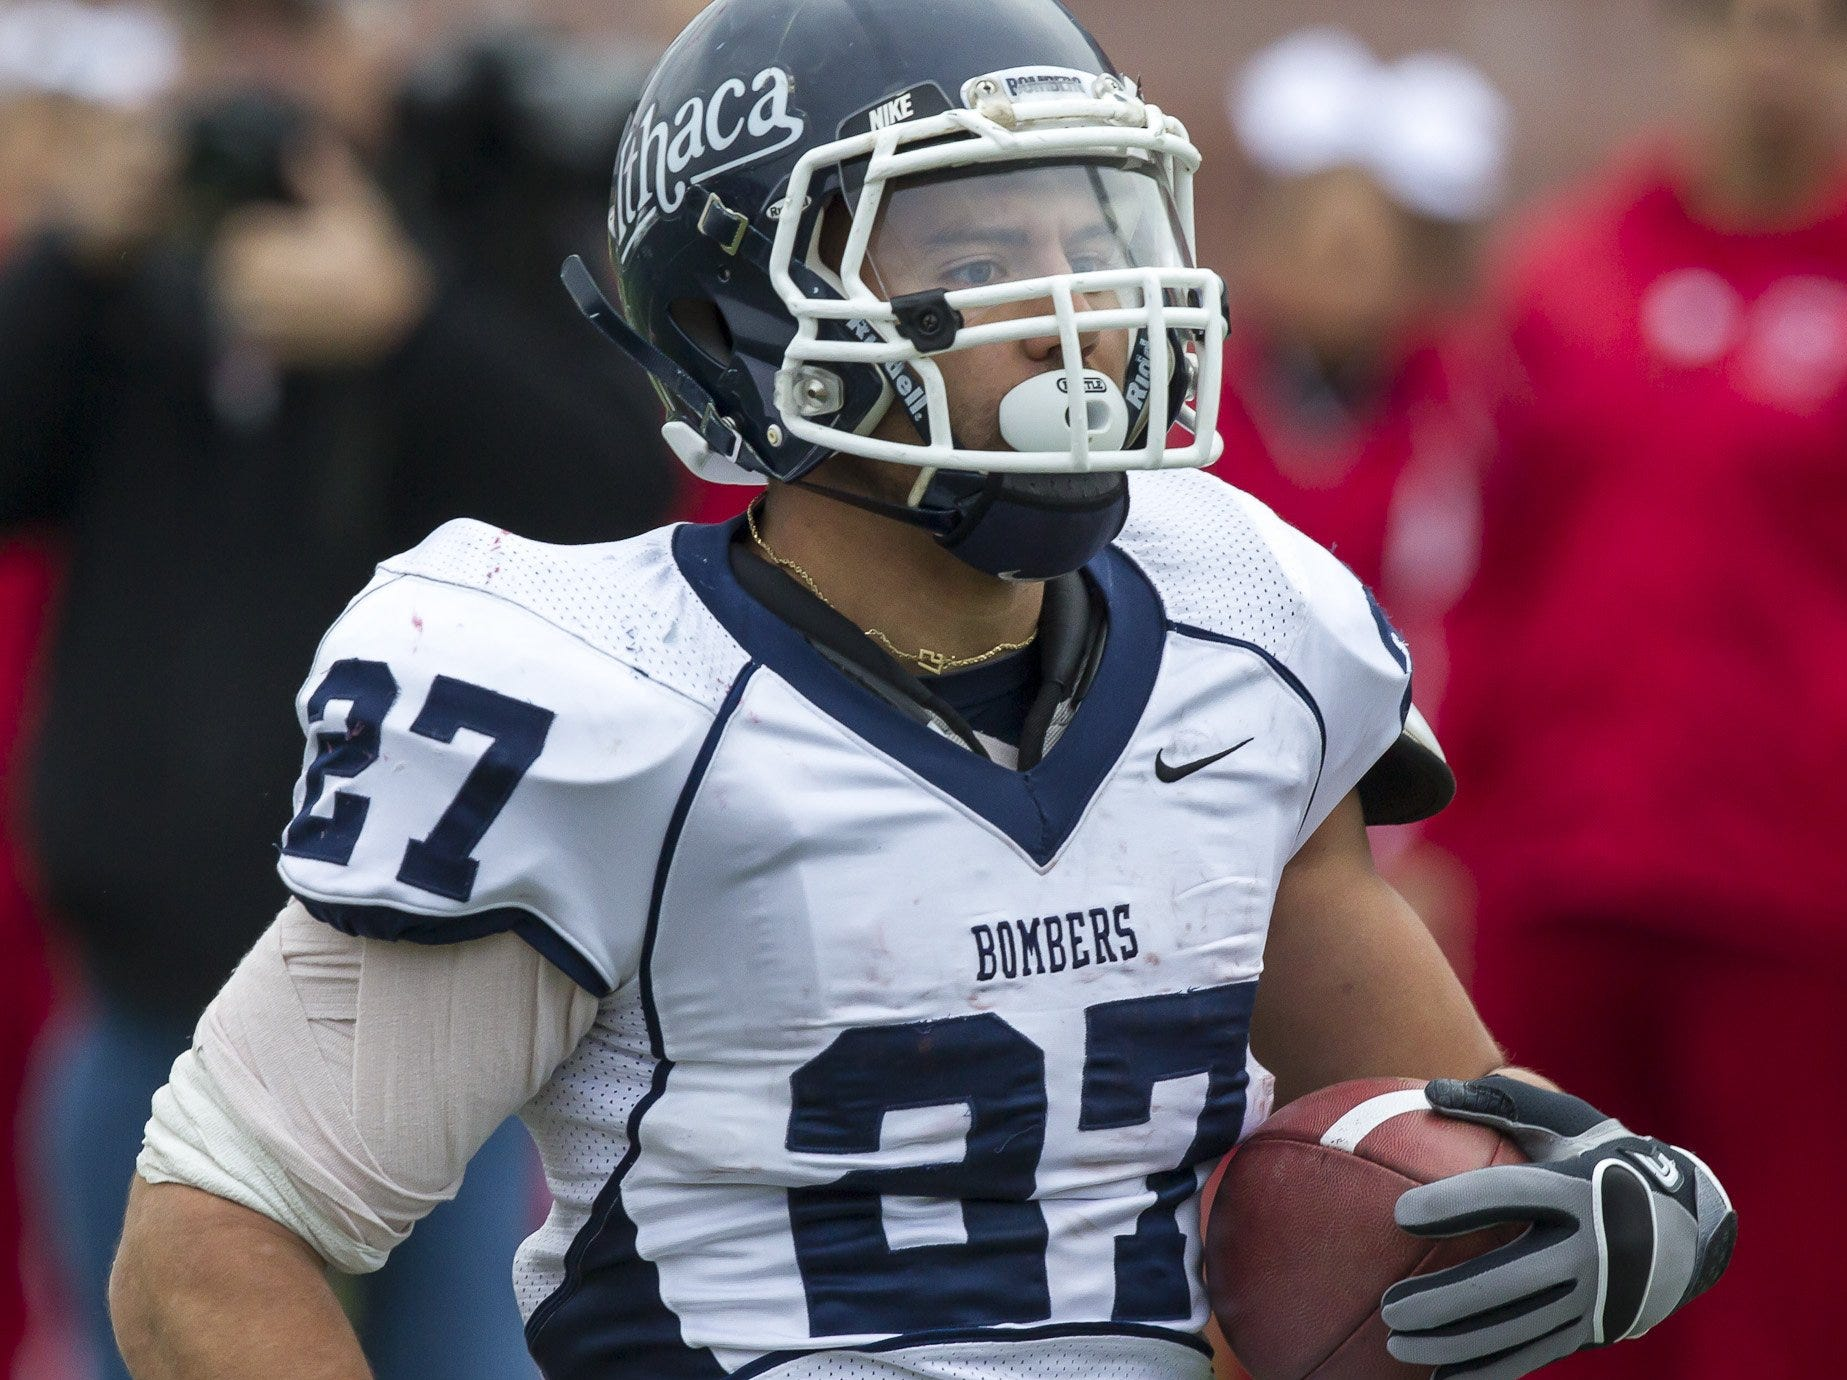 2012: Ithaca College senior Clay Ardoin runs for a touchdown during the first half Saturday at SUNY Cortland as the Ithaca College Bombers faced the Cortland Red Dragons in their annual Cortaca Jug game. Cortland defeated Ithaca College 16 to 10.